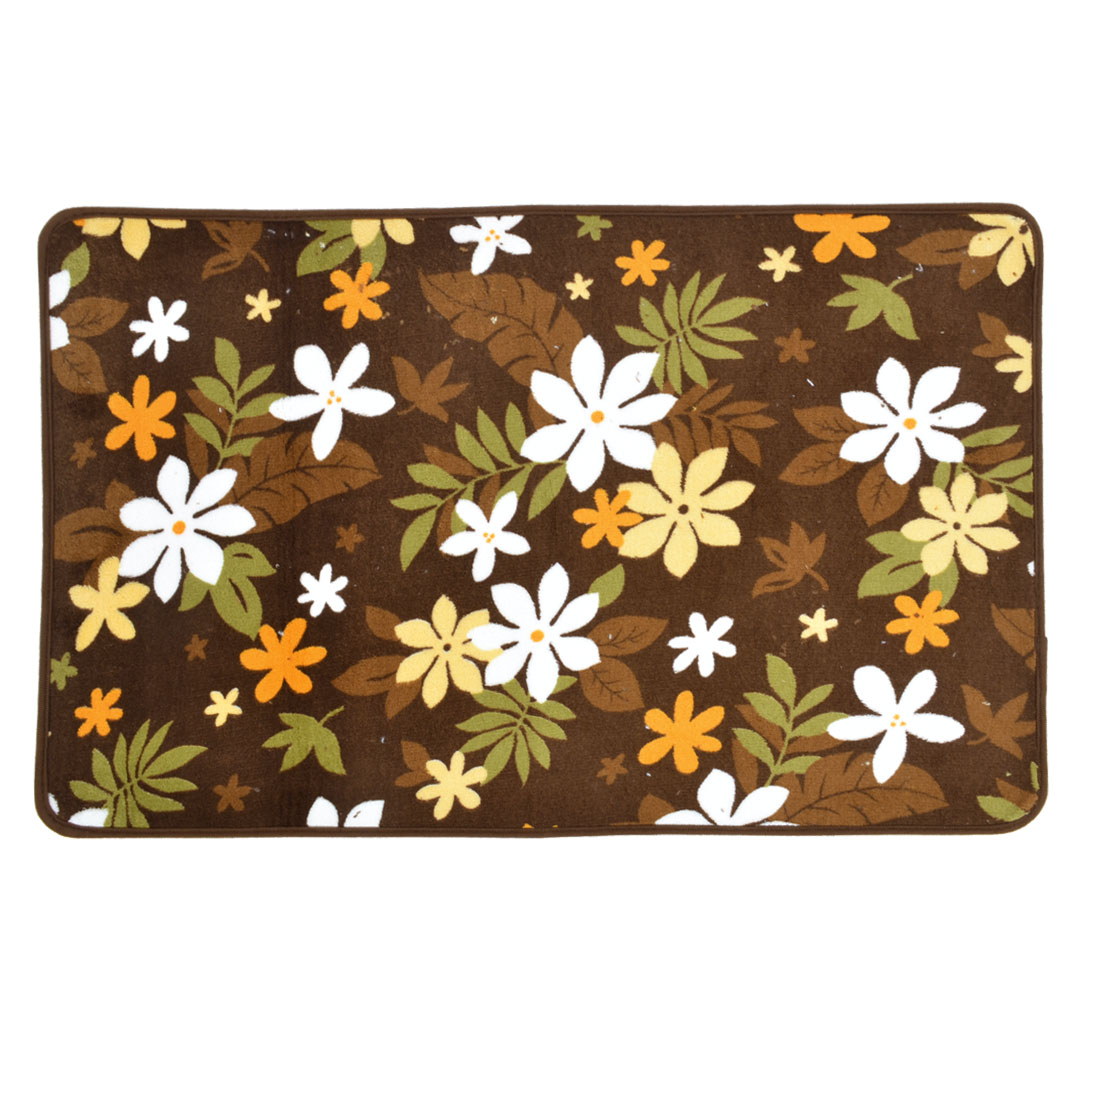 Brown Coral Fleece Flower Pattern Home Area Rug Carpet 80cm x 50cm